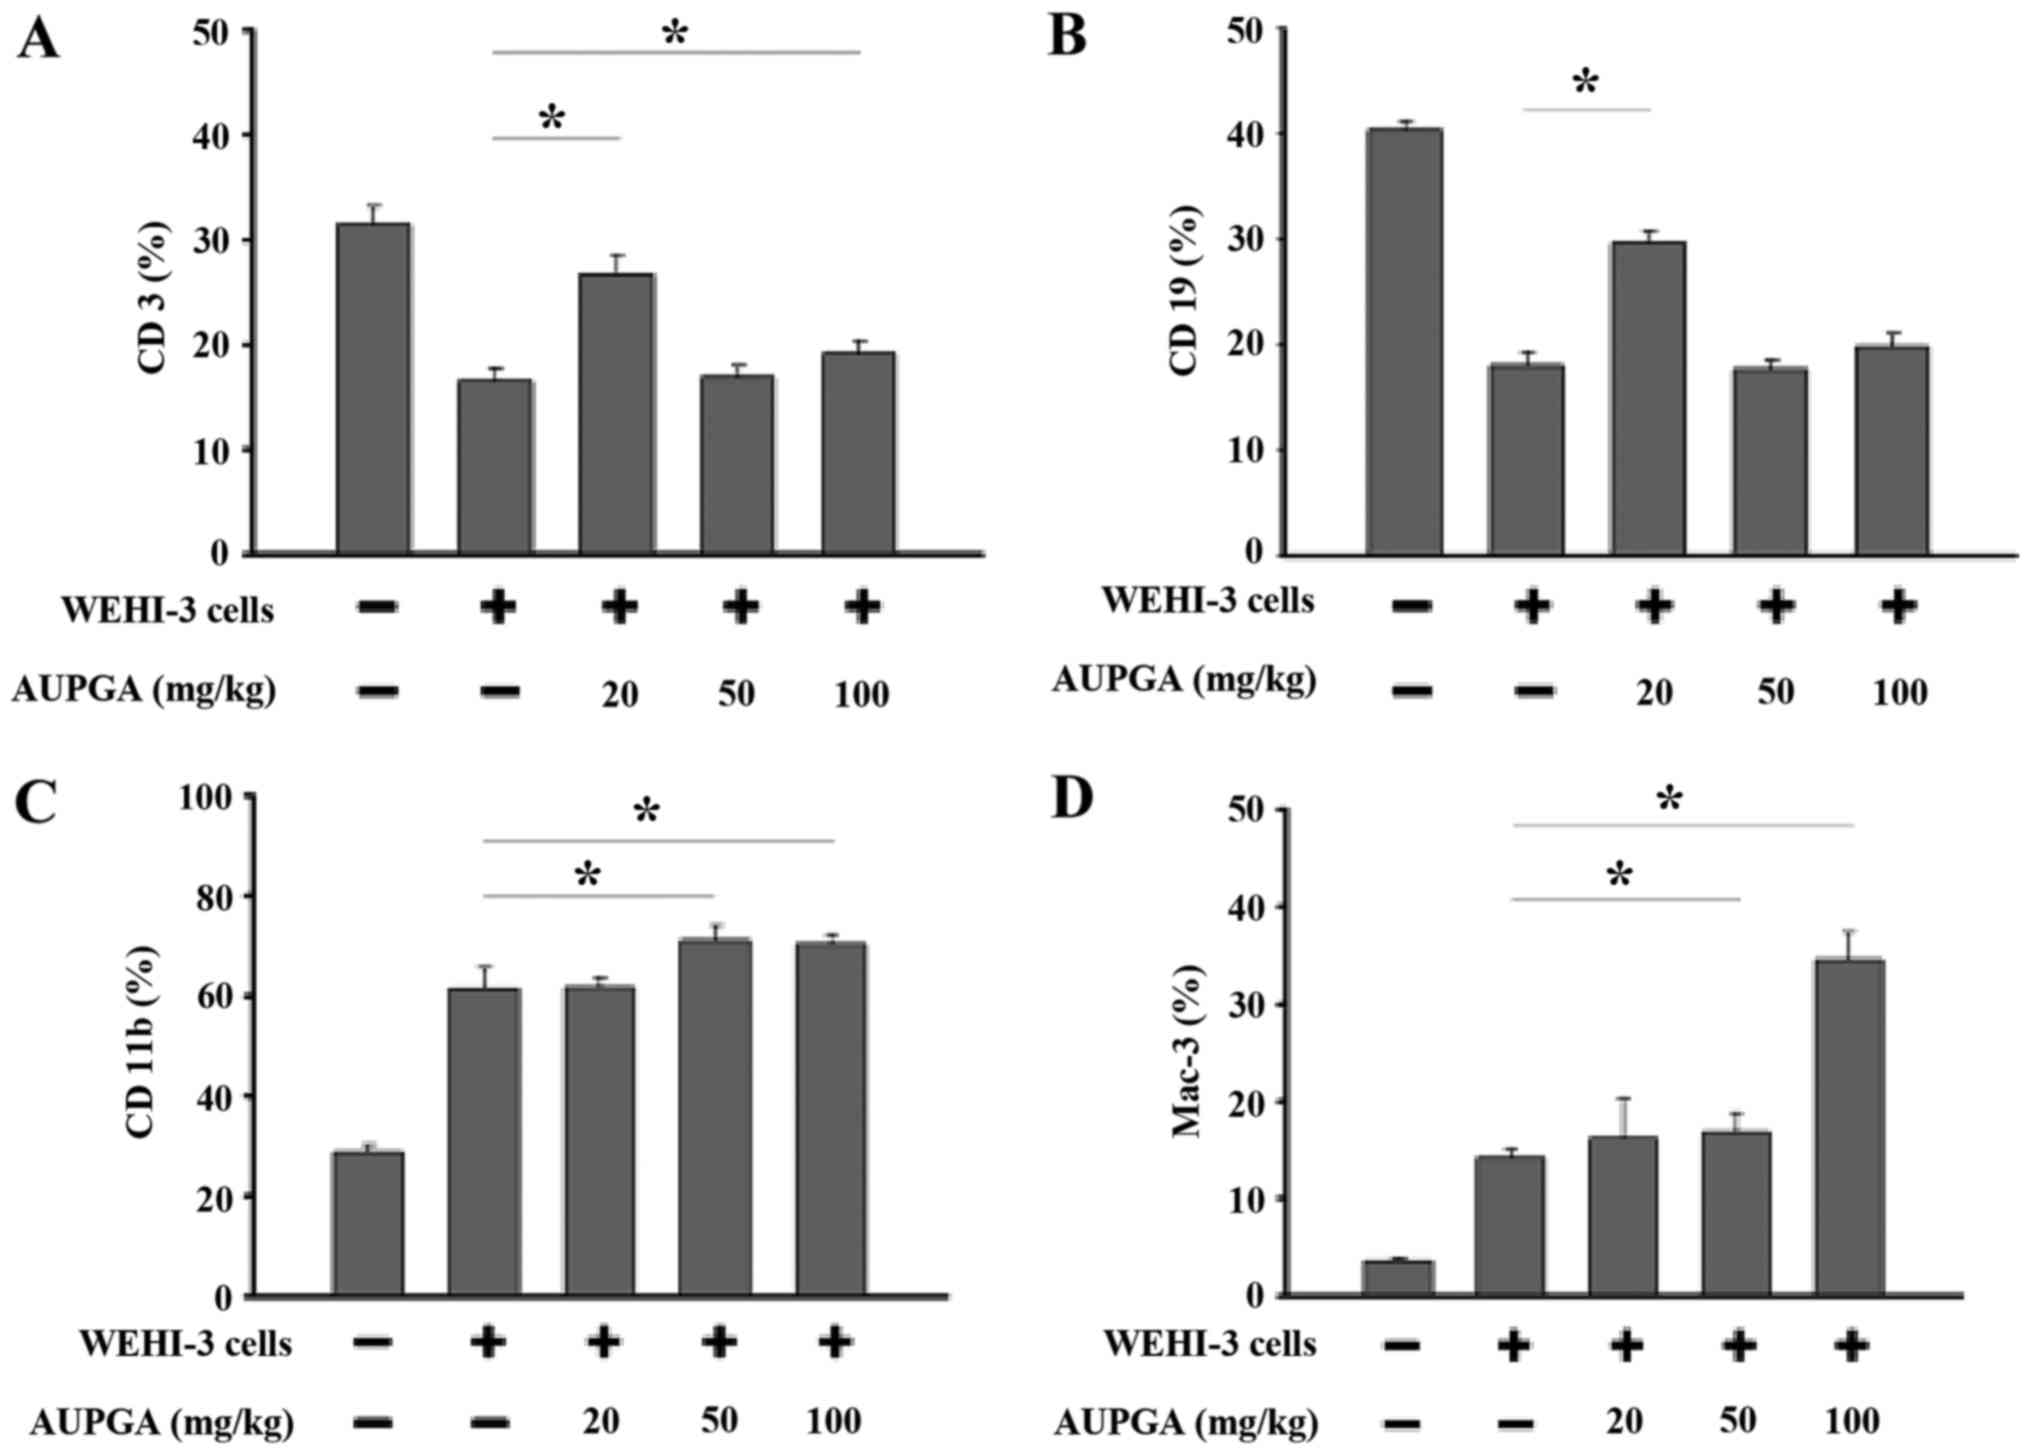 Anthocyanins From Black Rice Oryza Sativa Promote Immune Responses White Blood Cell Labeled Diagram When Cells Invade Effects Of Aupga Treatment On Markers Leukemia Balb C Mice Was Collected And Analyzed For A